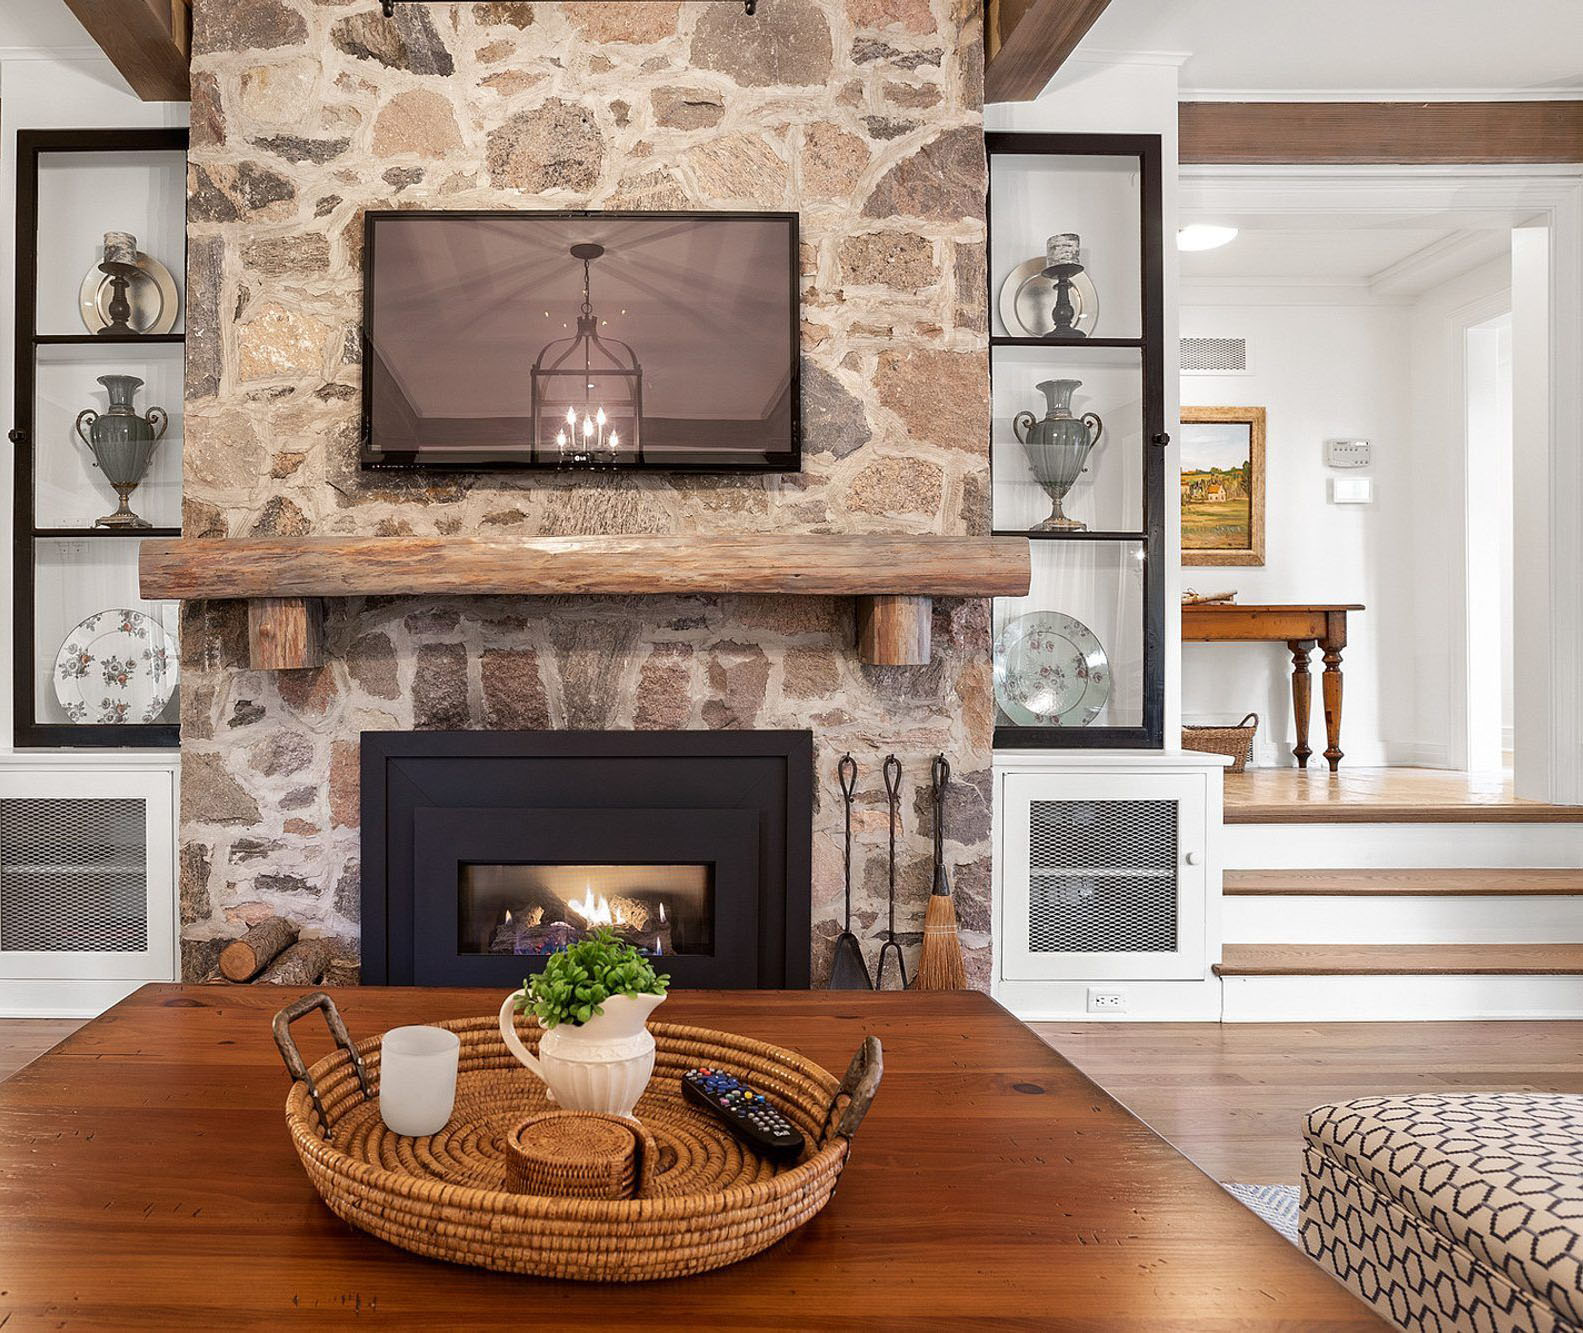 Real stone fireplace surround featuring a warm brown color scheme, gas fire box, a real wood mantle and thick grout lines.